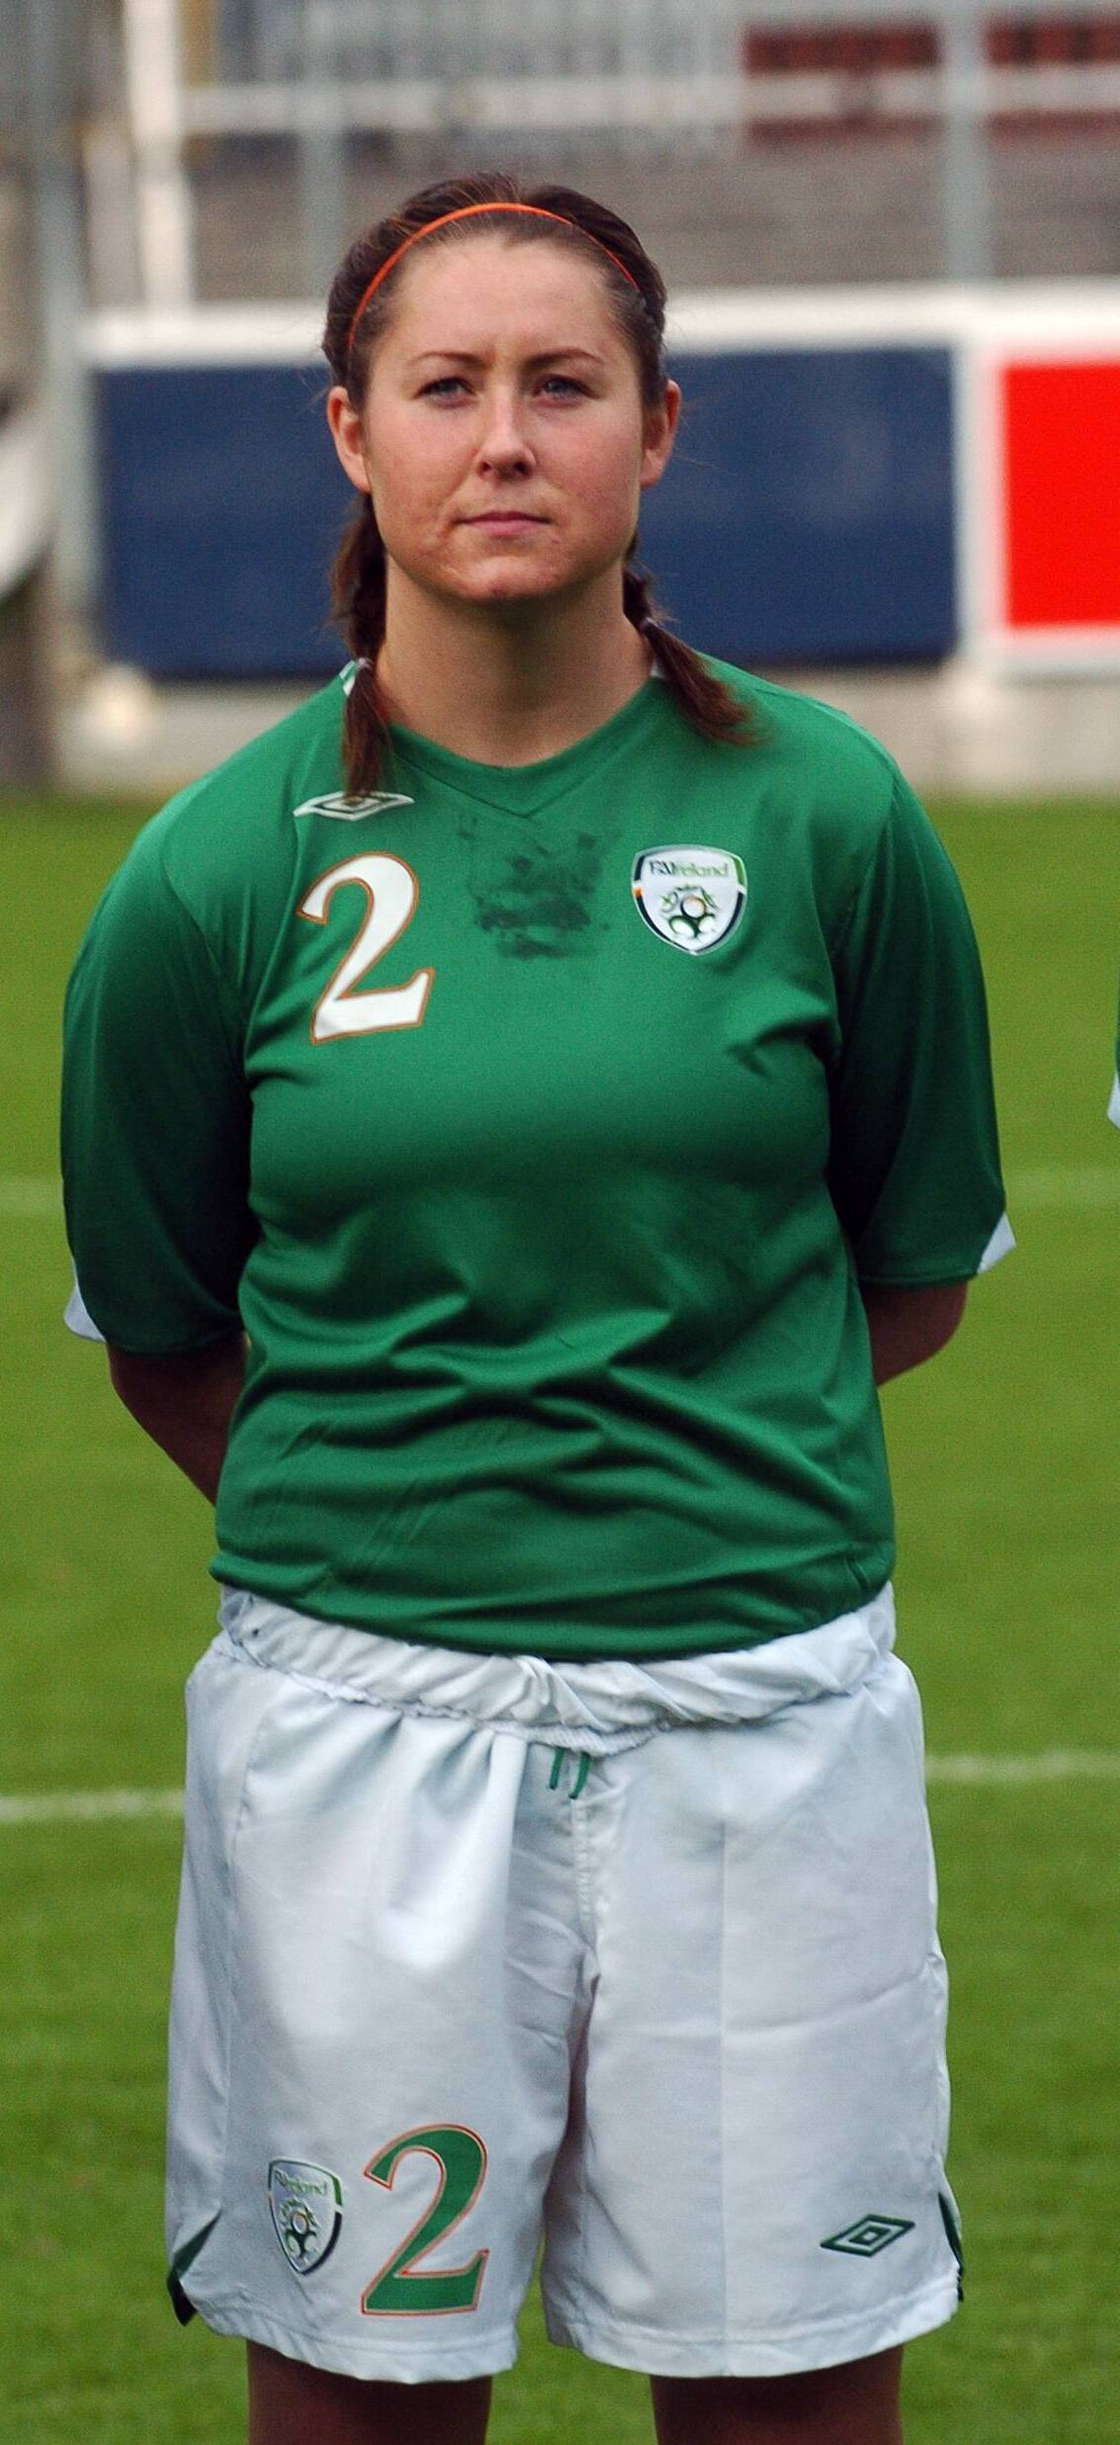 Image - Curtin on Ireland duty in 2007